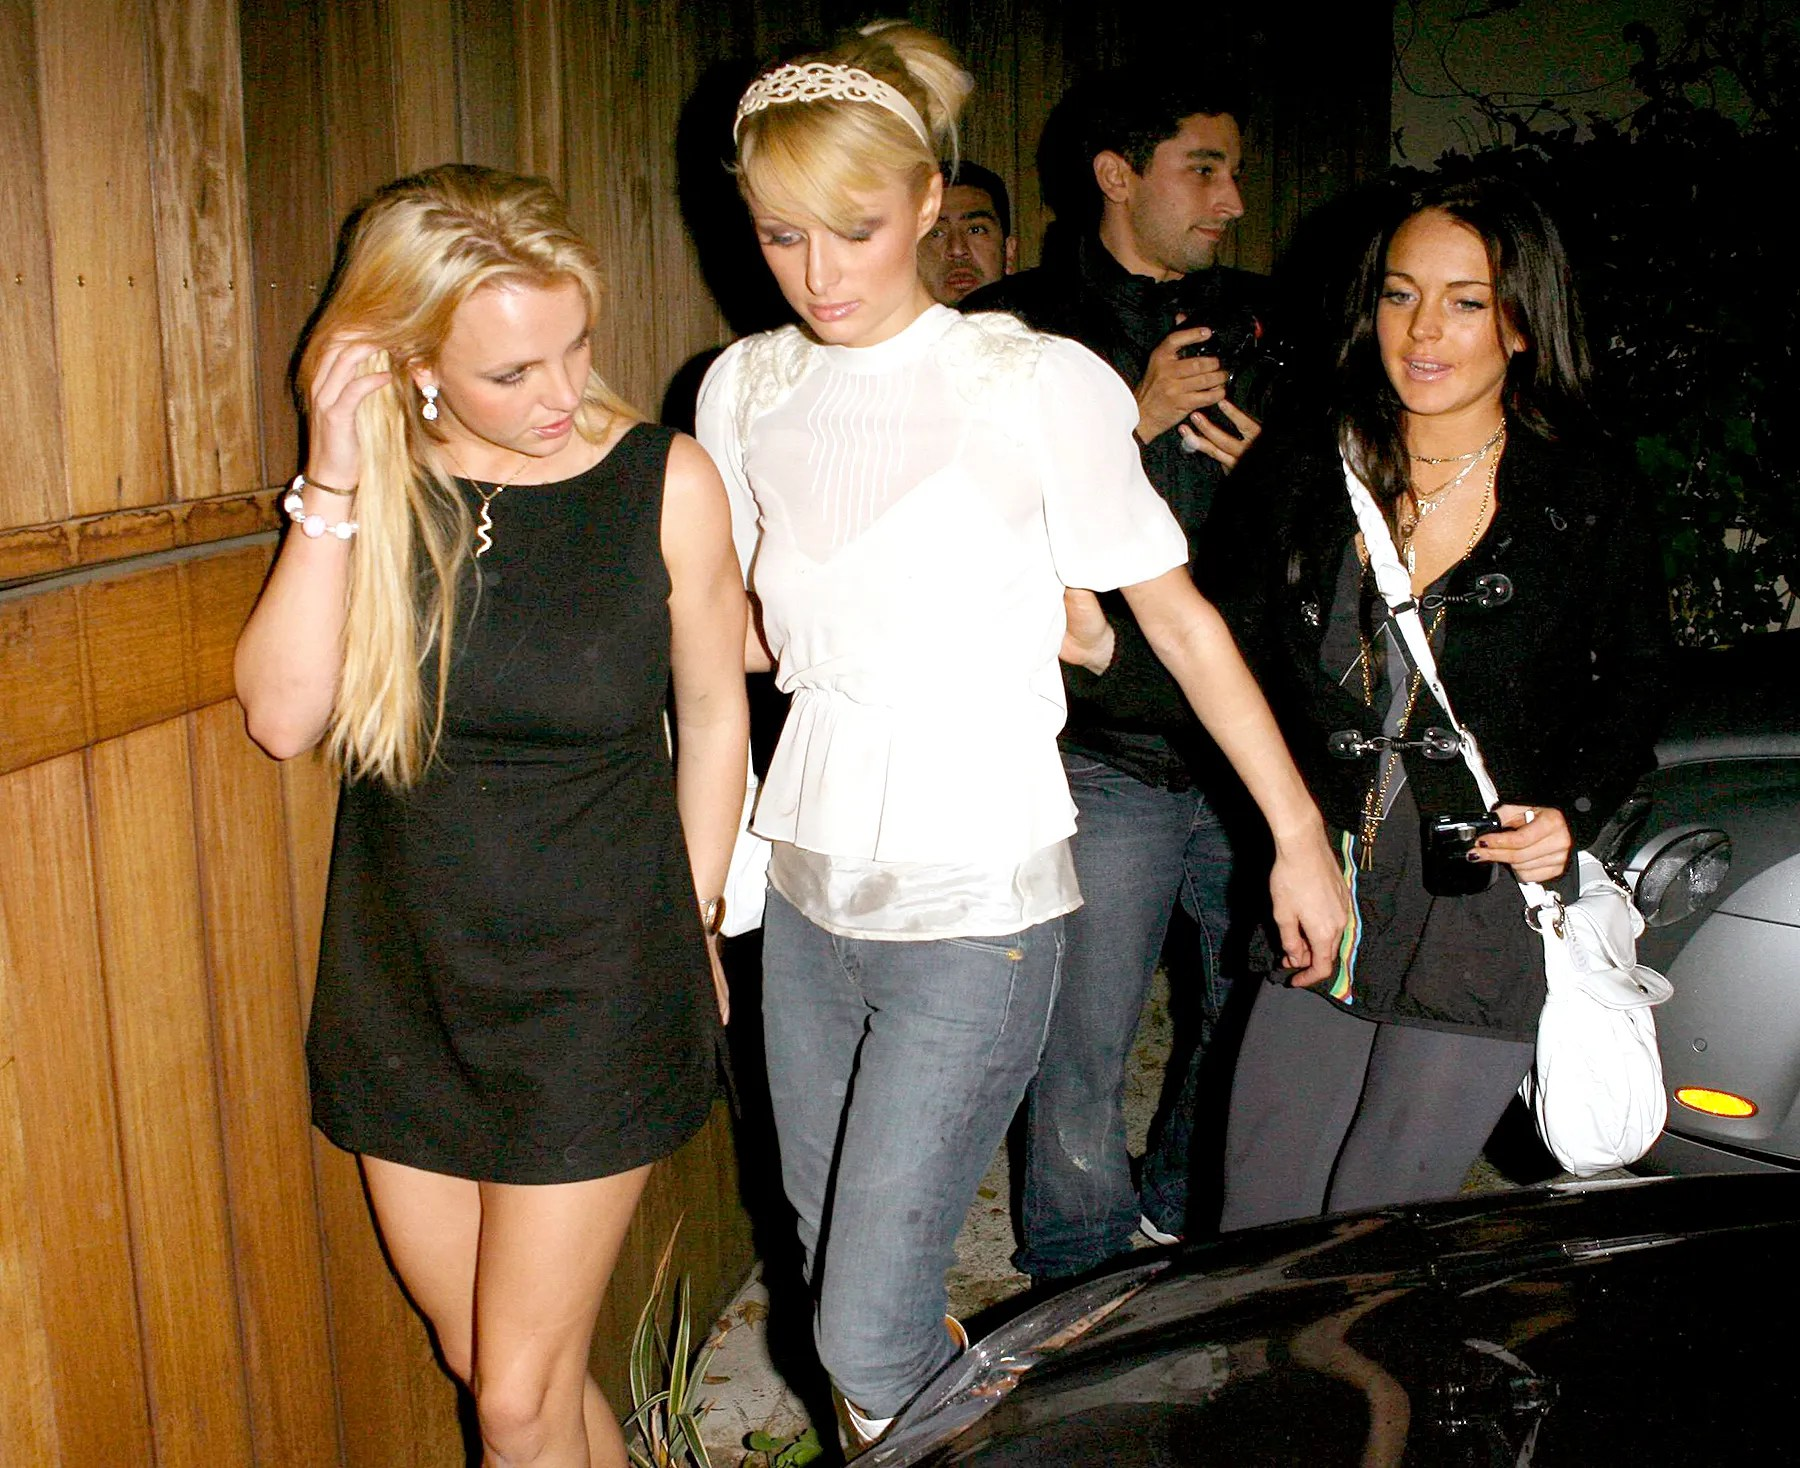 Britney Leads 4 Paparazzi To The Big House, The Slammer, The Clink new images